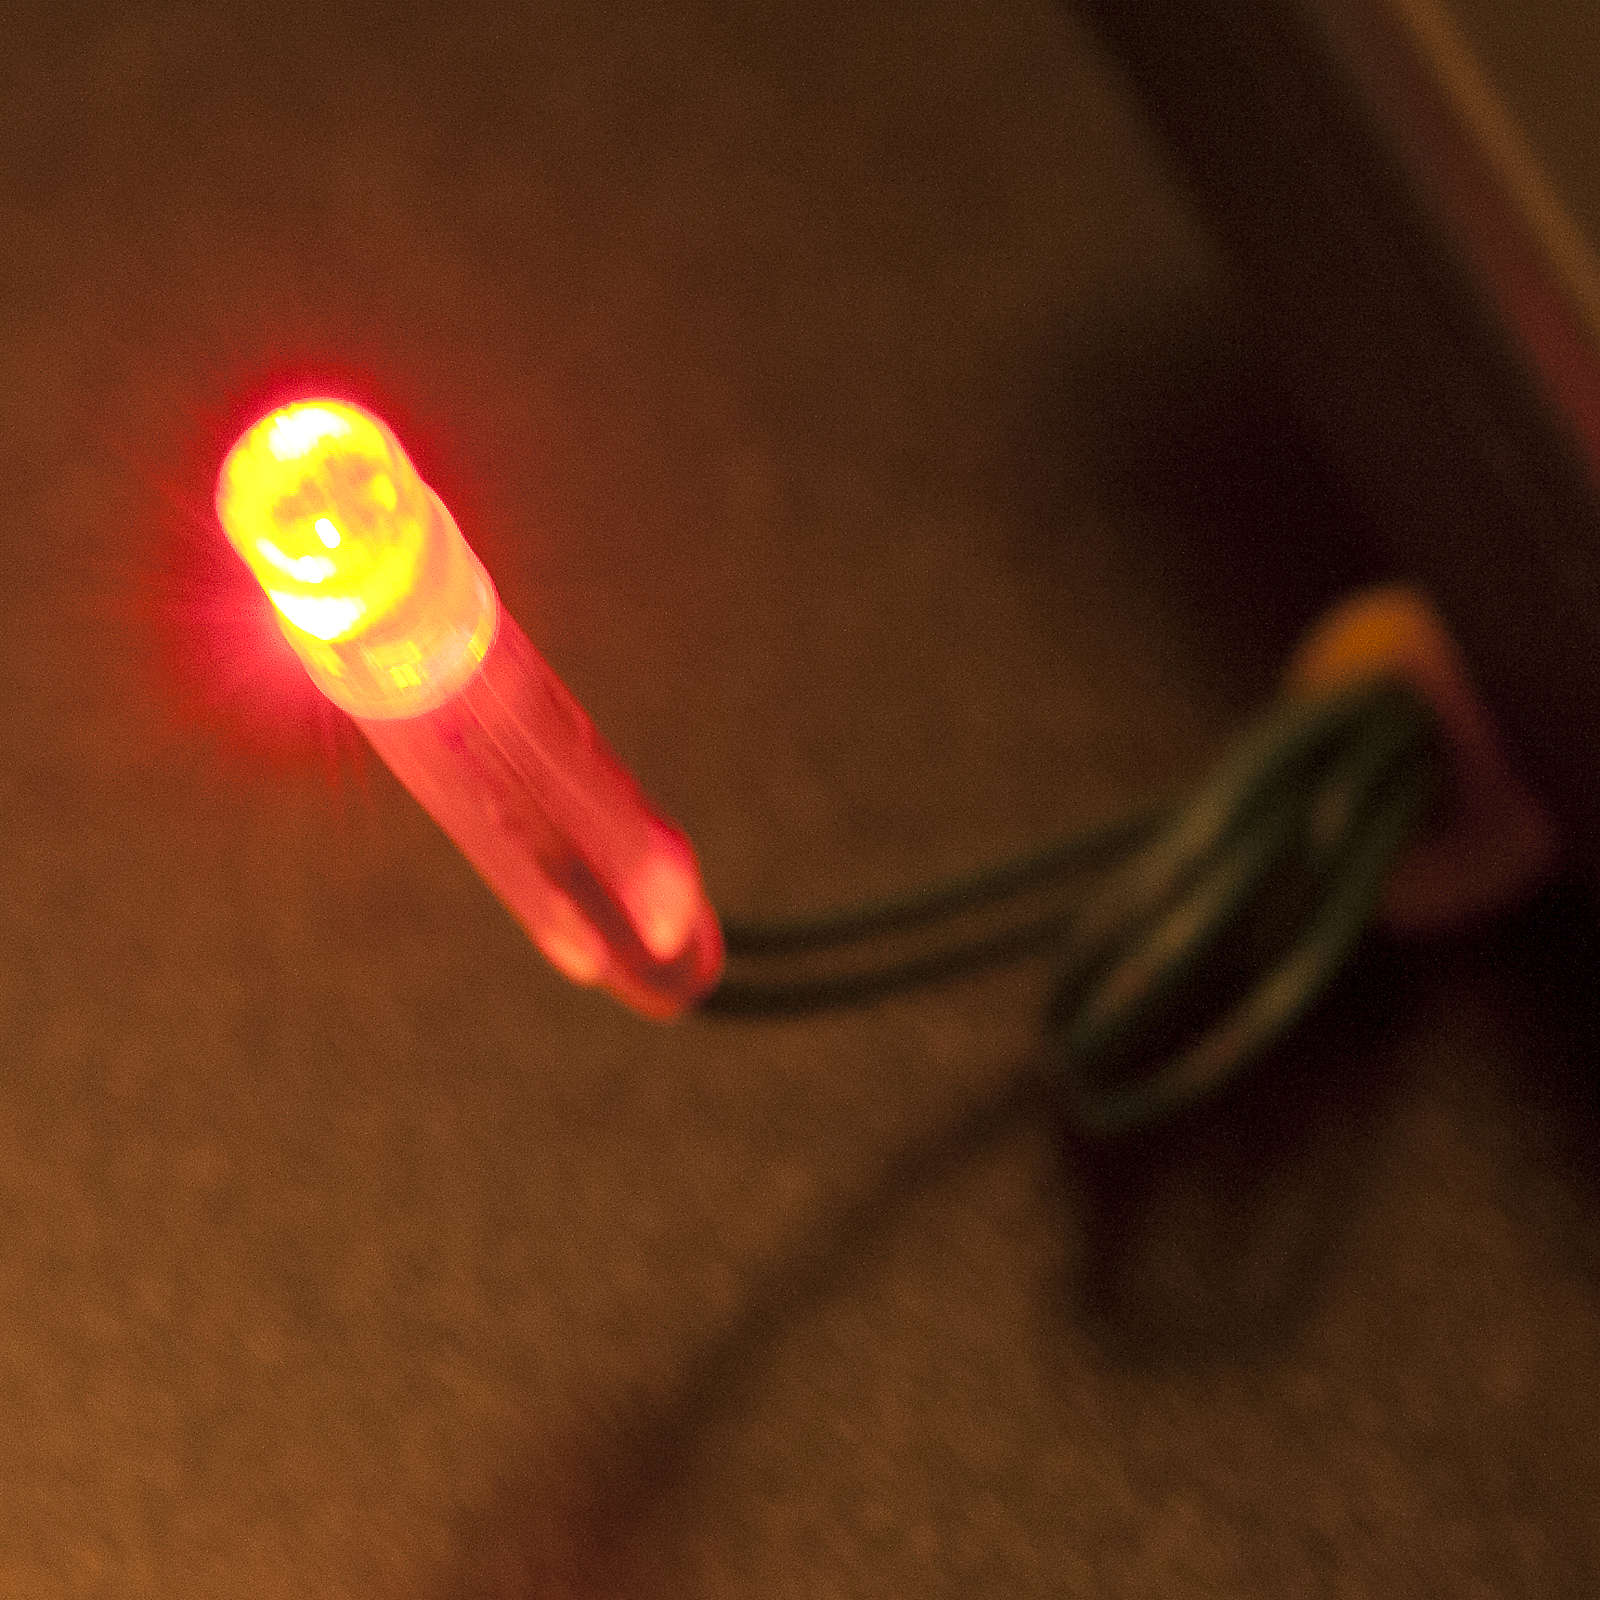 Led Flame Effect.Led Fire Effect Light Battery Powered